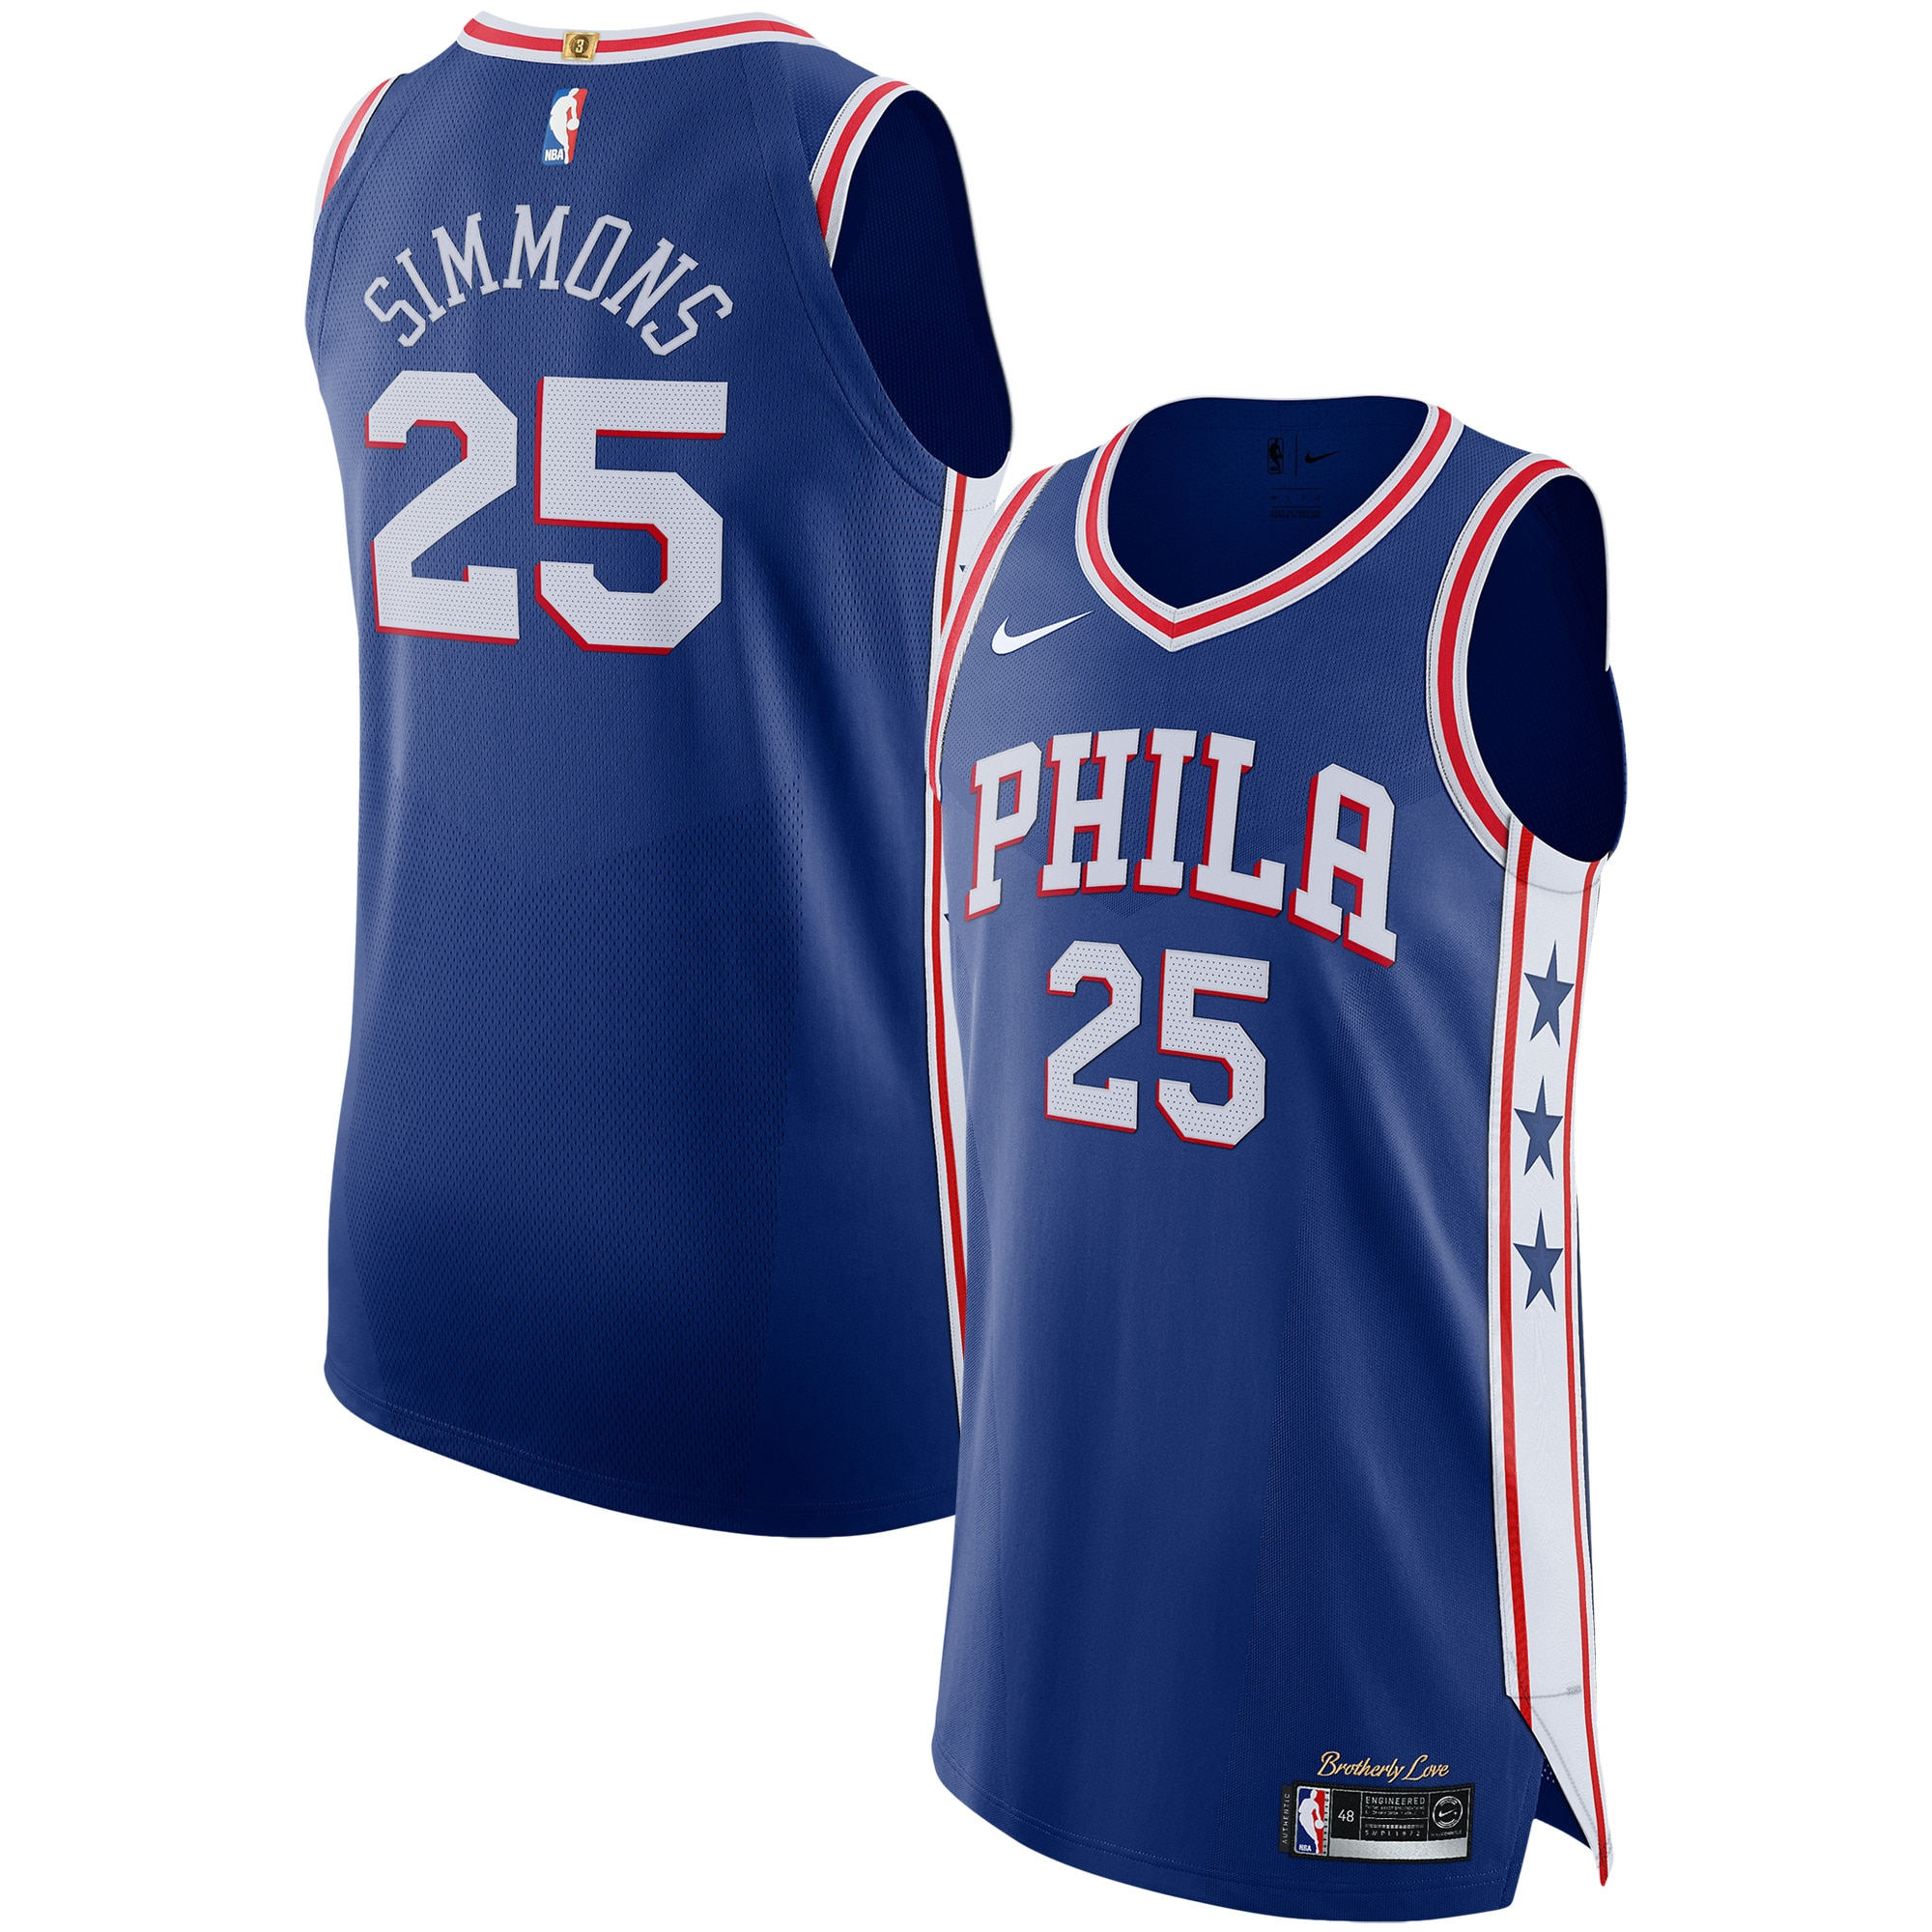 Ben Simmons Philadelphia 76ers Nike Authentic Basketball Jersey Royal - Icon Edition